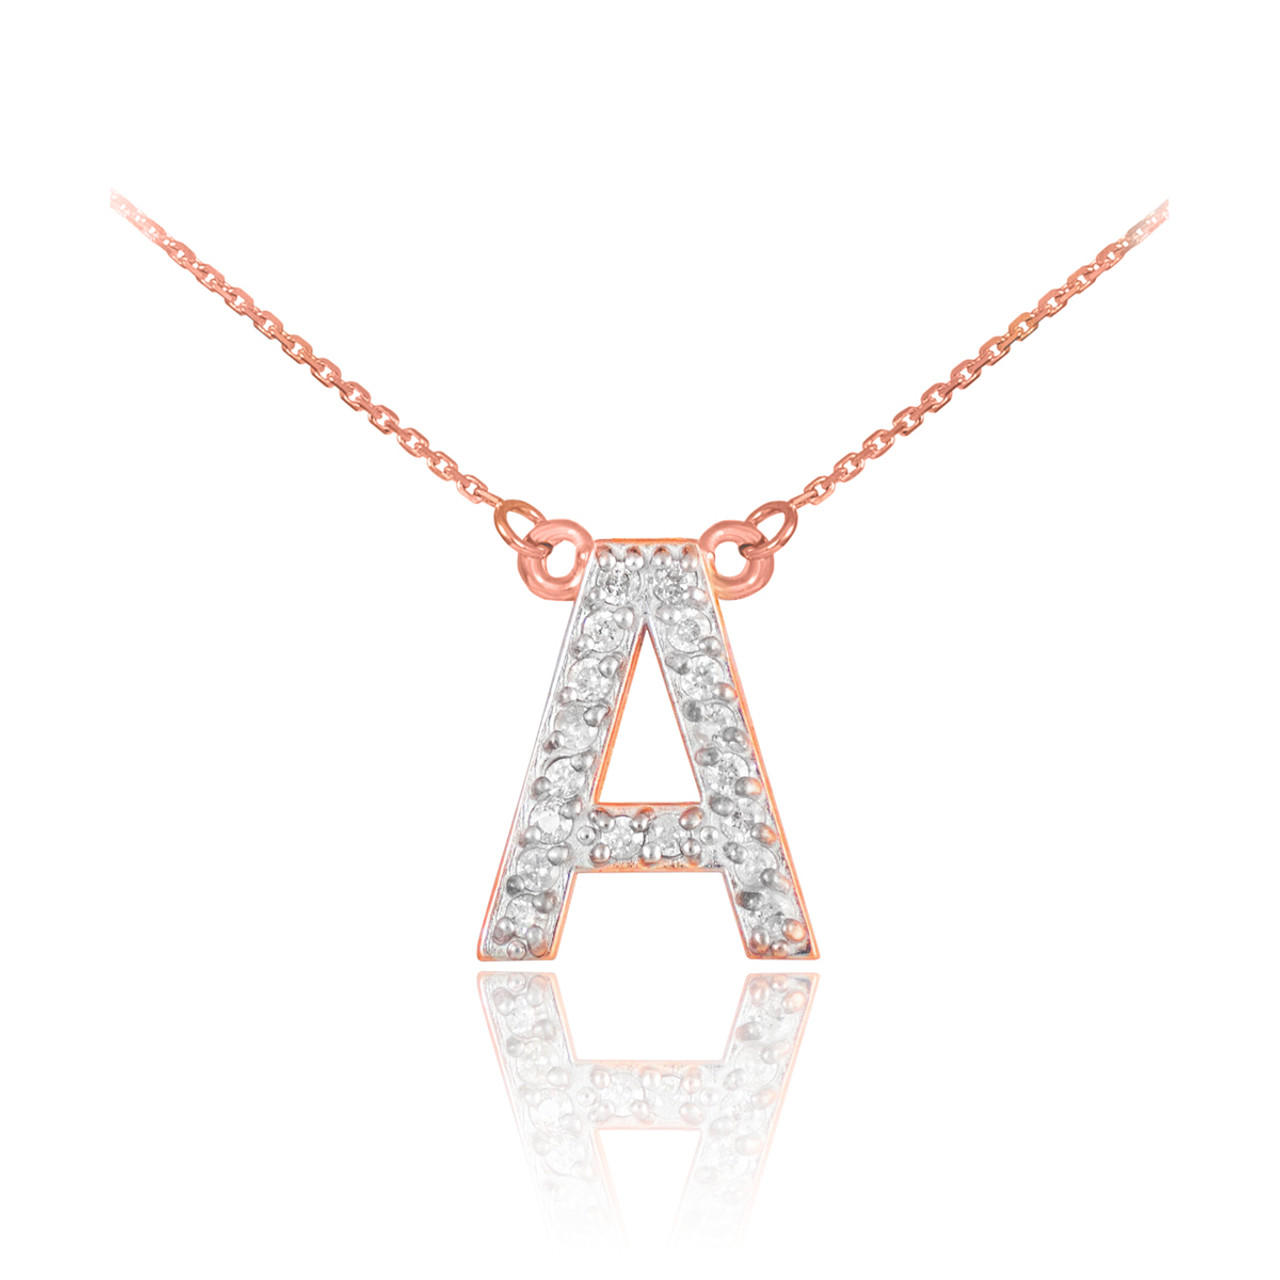 14k rose gold letter a initial diamond monogram necklace 14k rose gold letter a diamond initial monogram necklace aloadofball Choice Image